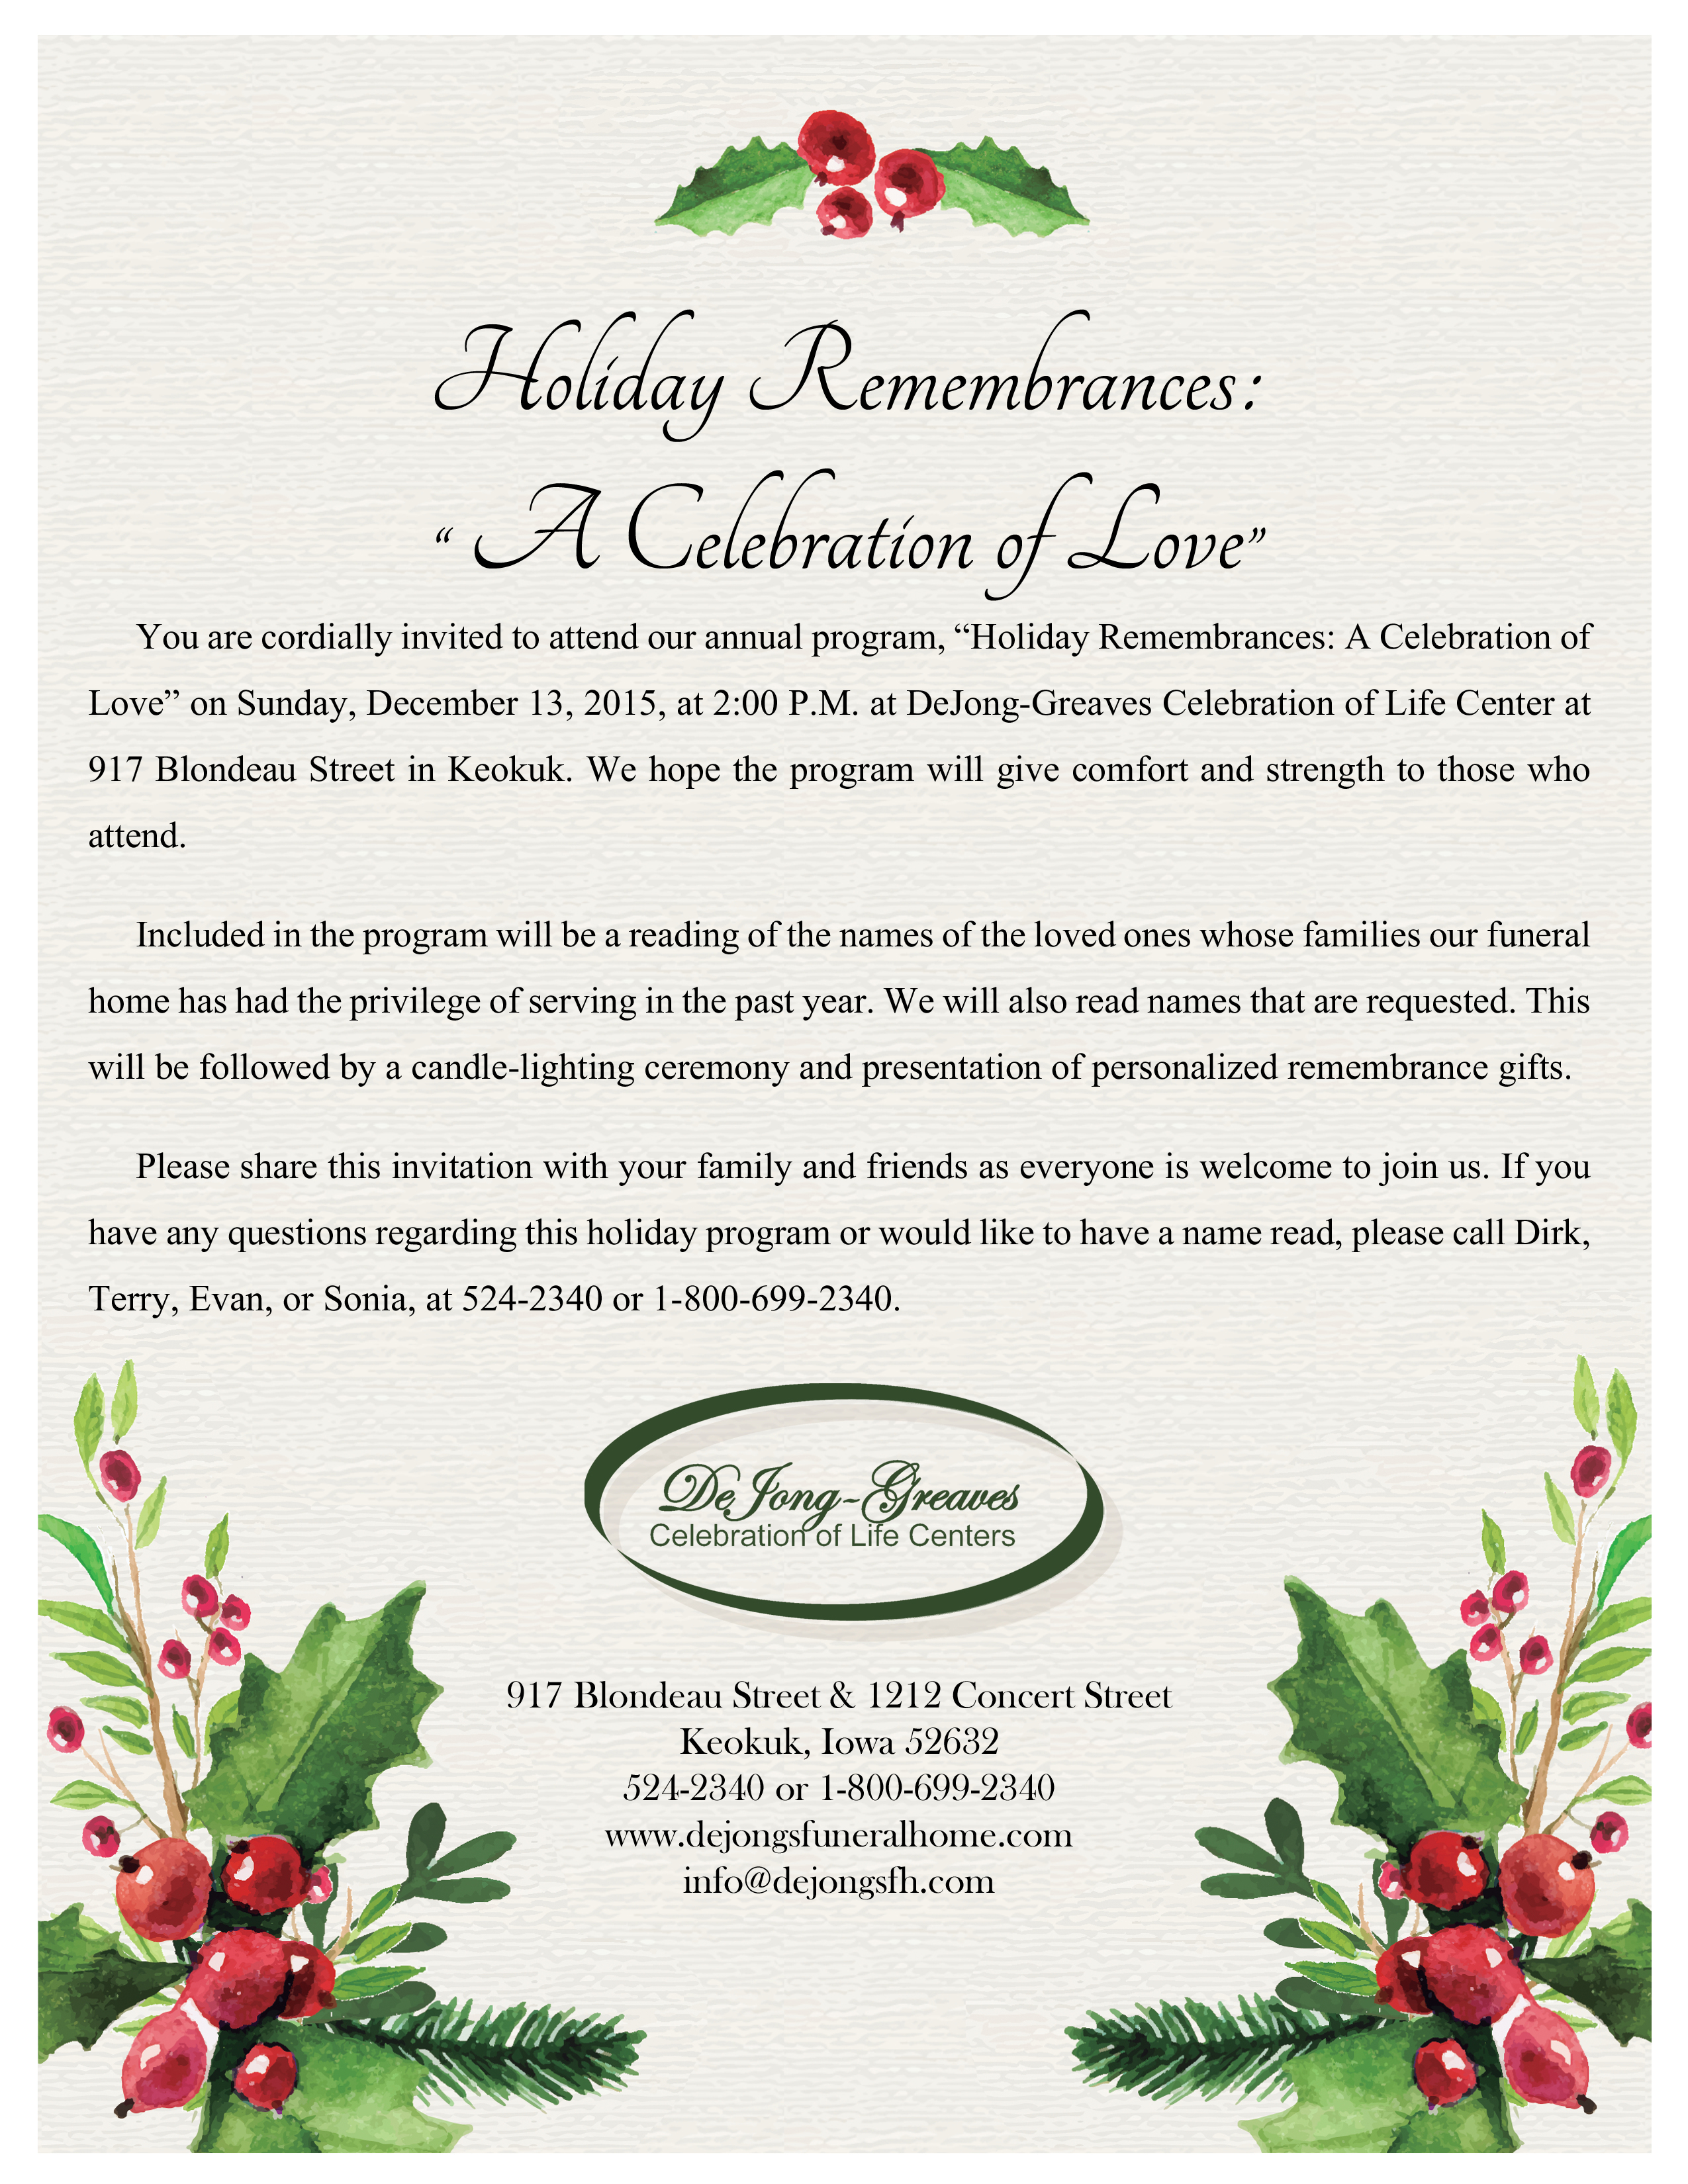 You Are Invited To Our Holiday Remembrances Program On December 13th  Invitation For Funeral Ceremony